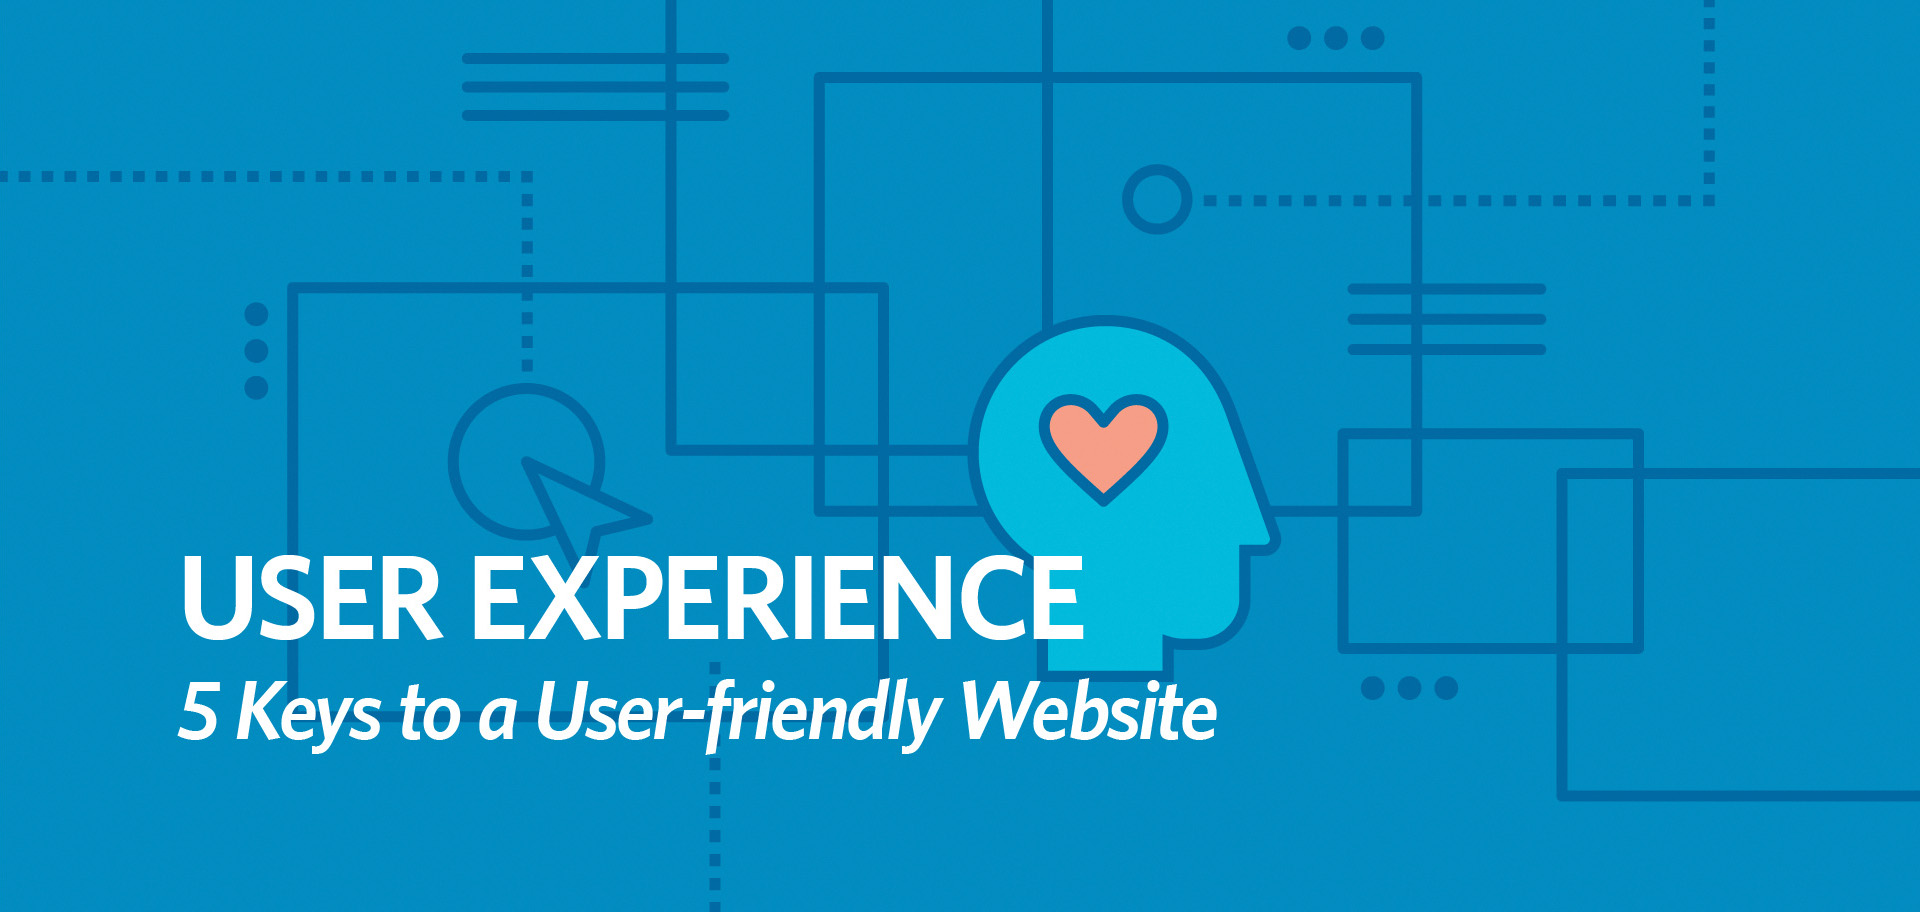 User Experience: 5 Keys to a User-friendly Website by Kettle Fire Creative blog. user experience User Experience: 5 Keys to a User-friendly Website user experience fi